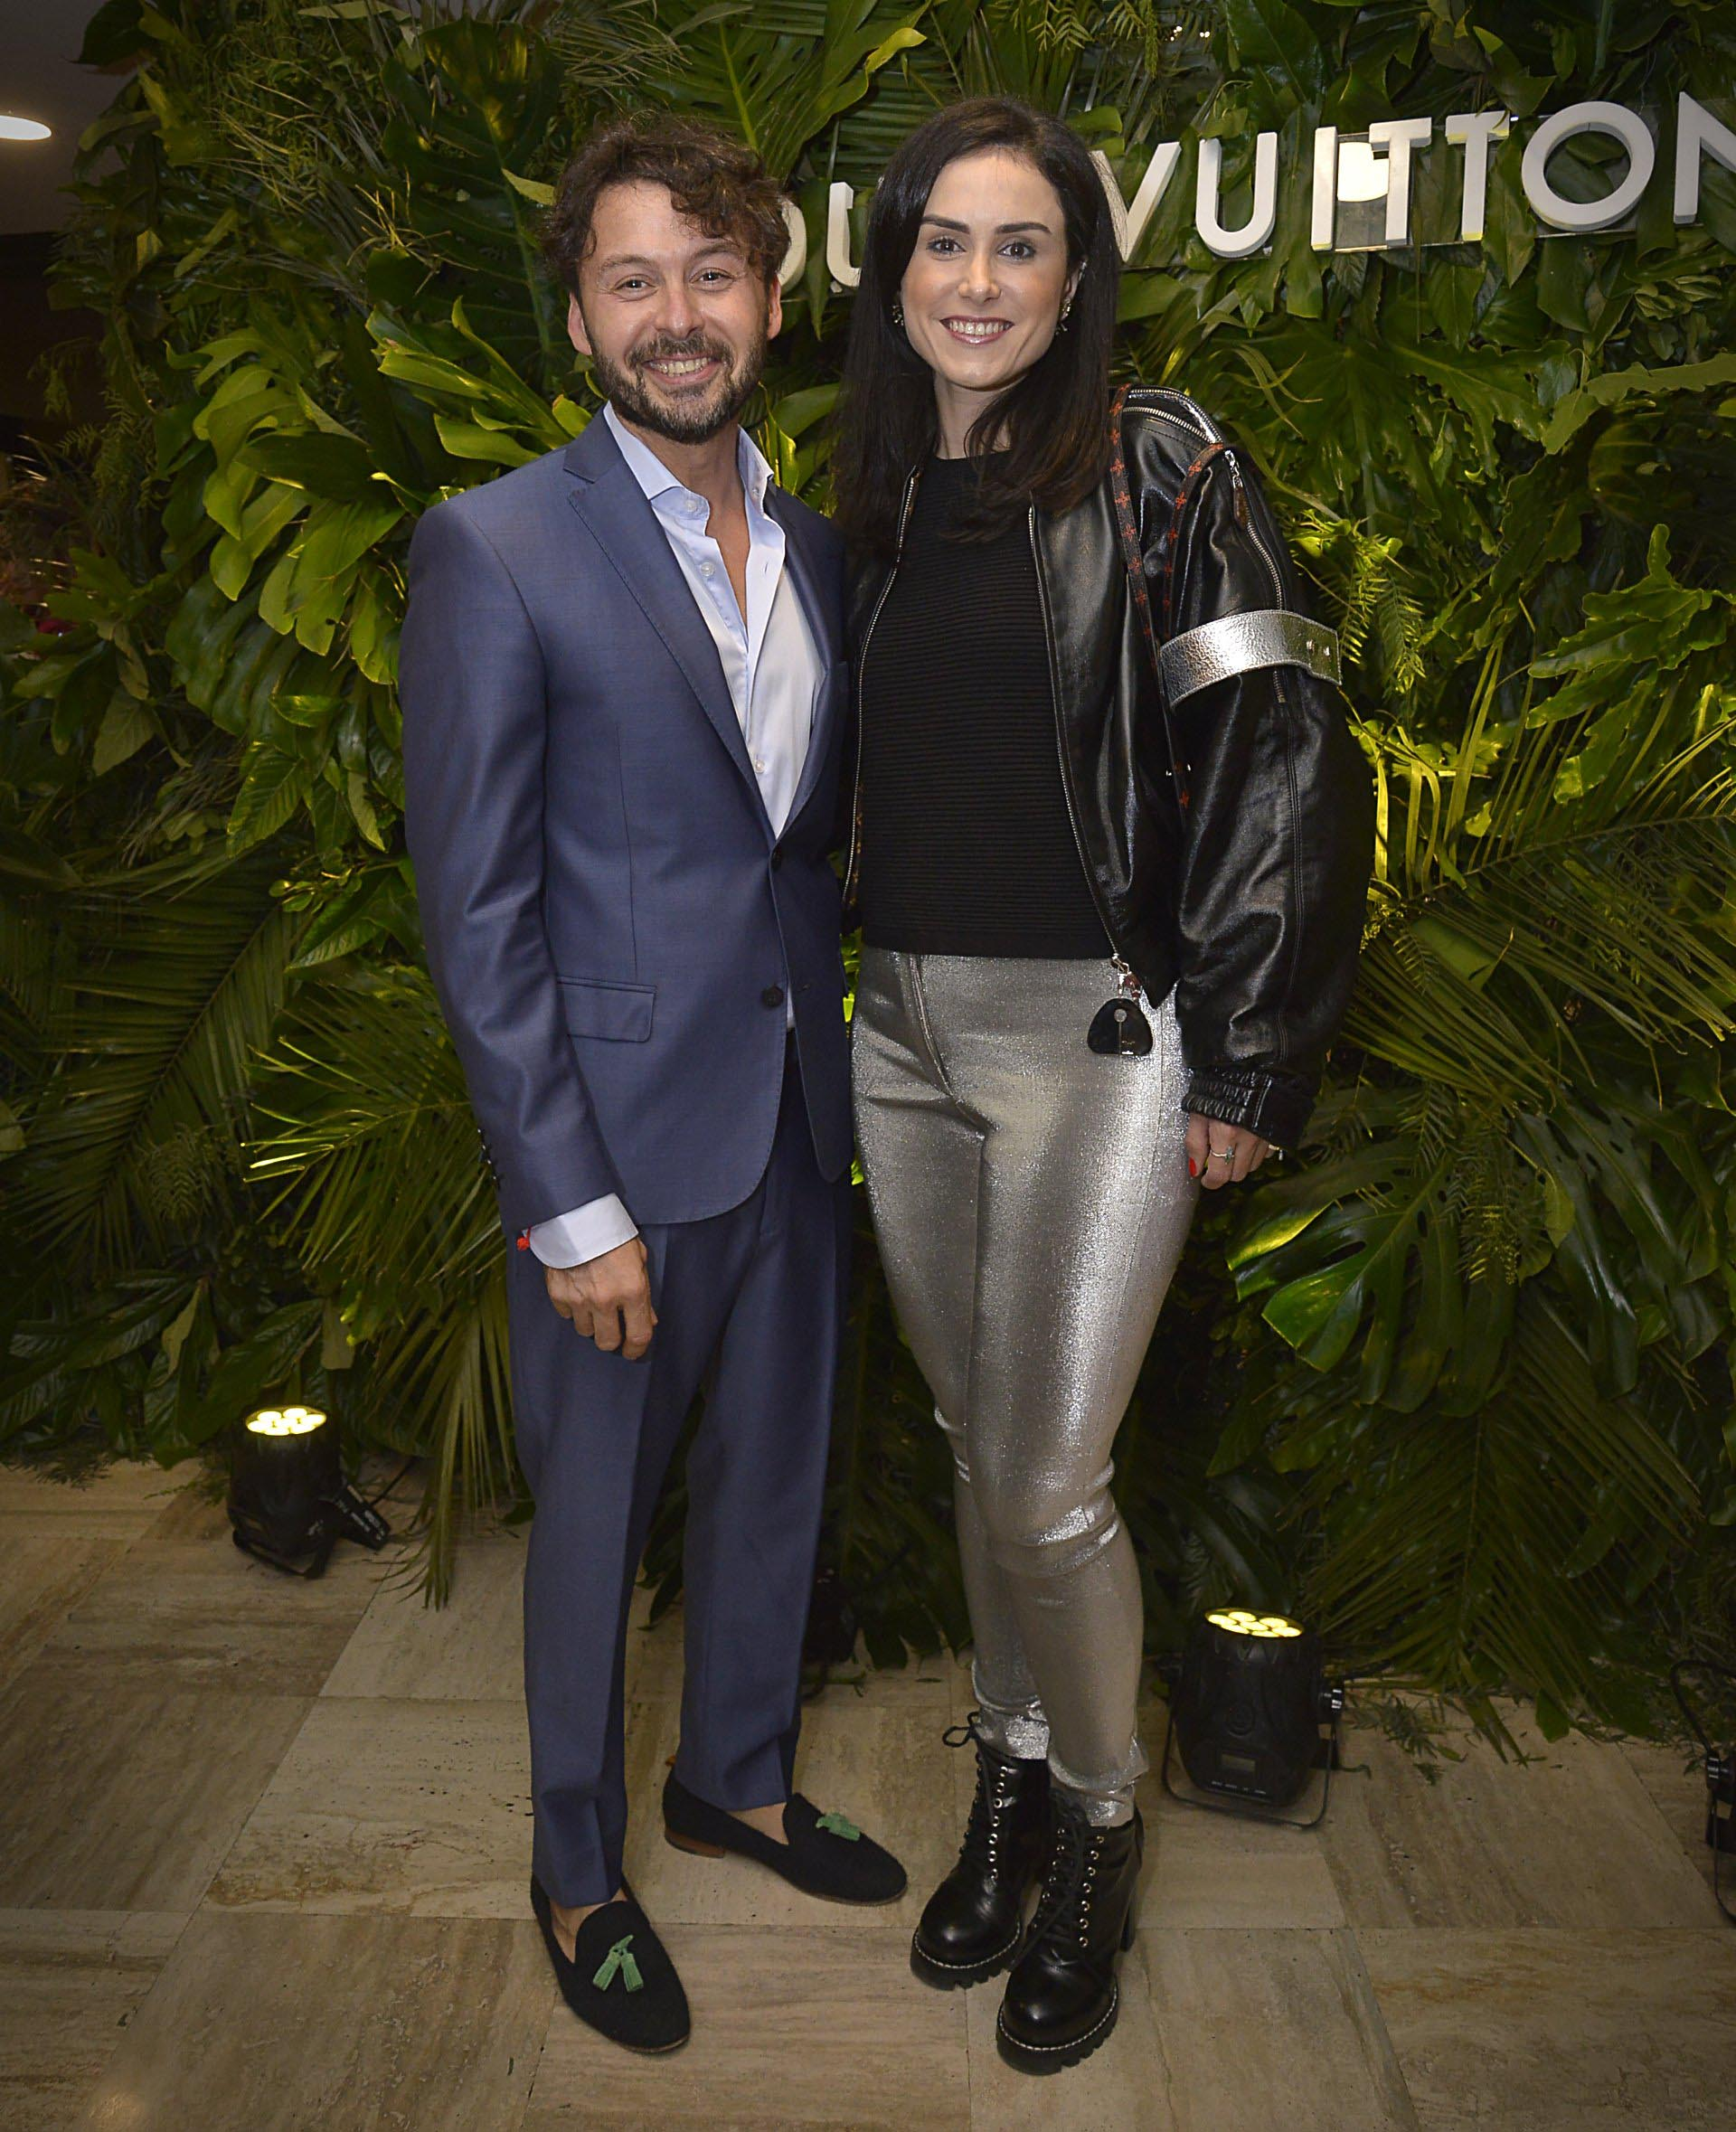 Wally Diamante y Andrezza Mastiguim, PR director de Louis Vuitton Latinoamérica